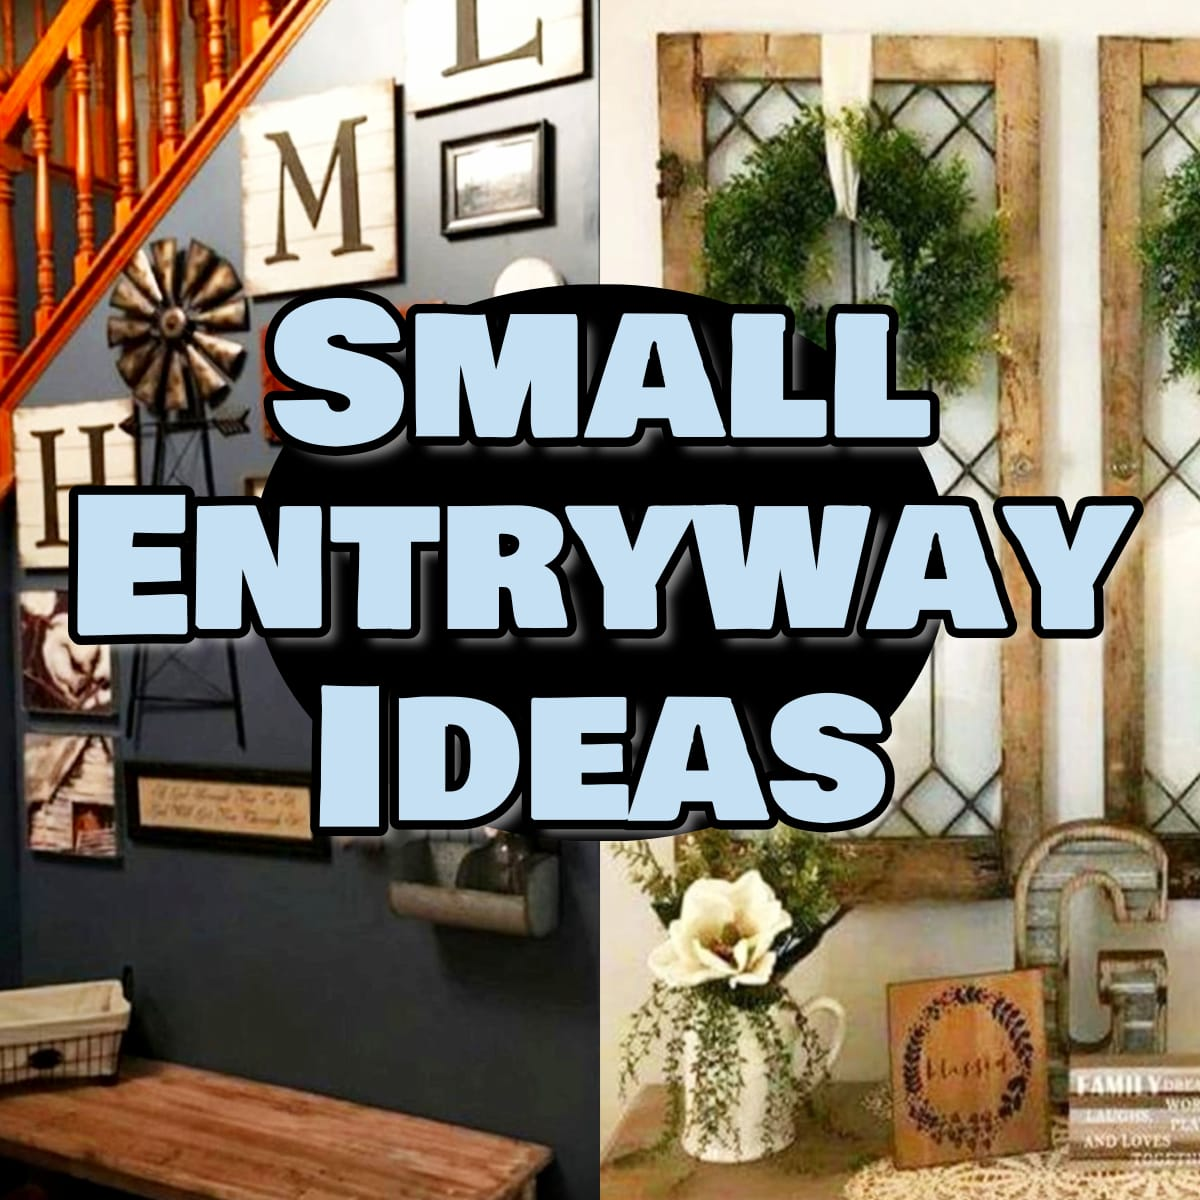 Small Entryway ideas - pictures of foyer decorating ideas for small entryways and apartment foyers